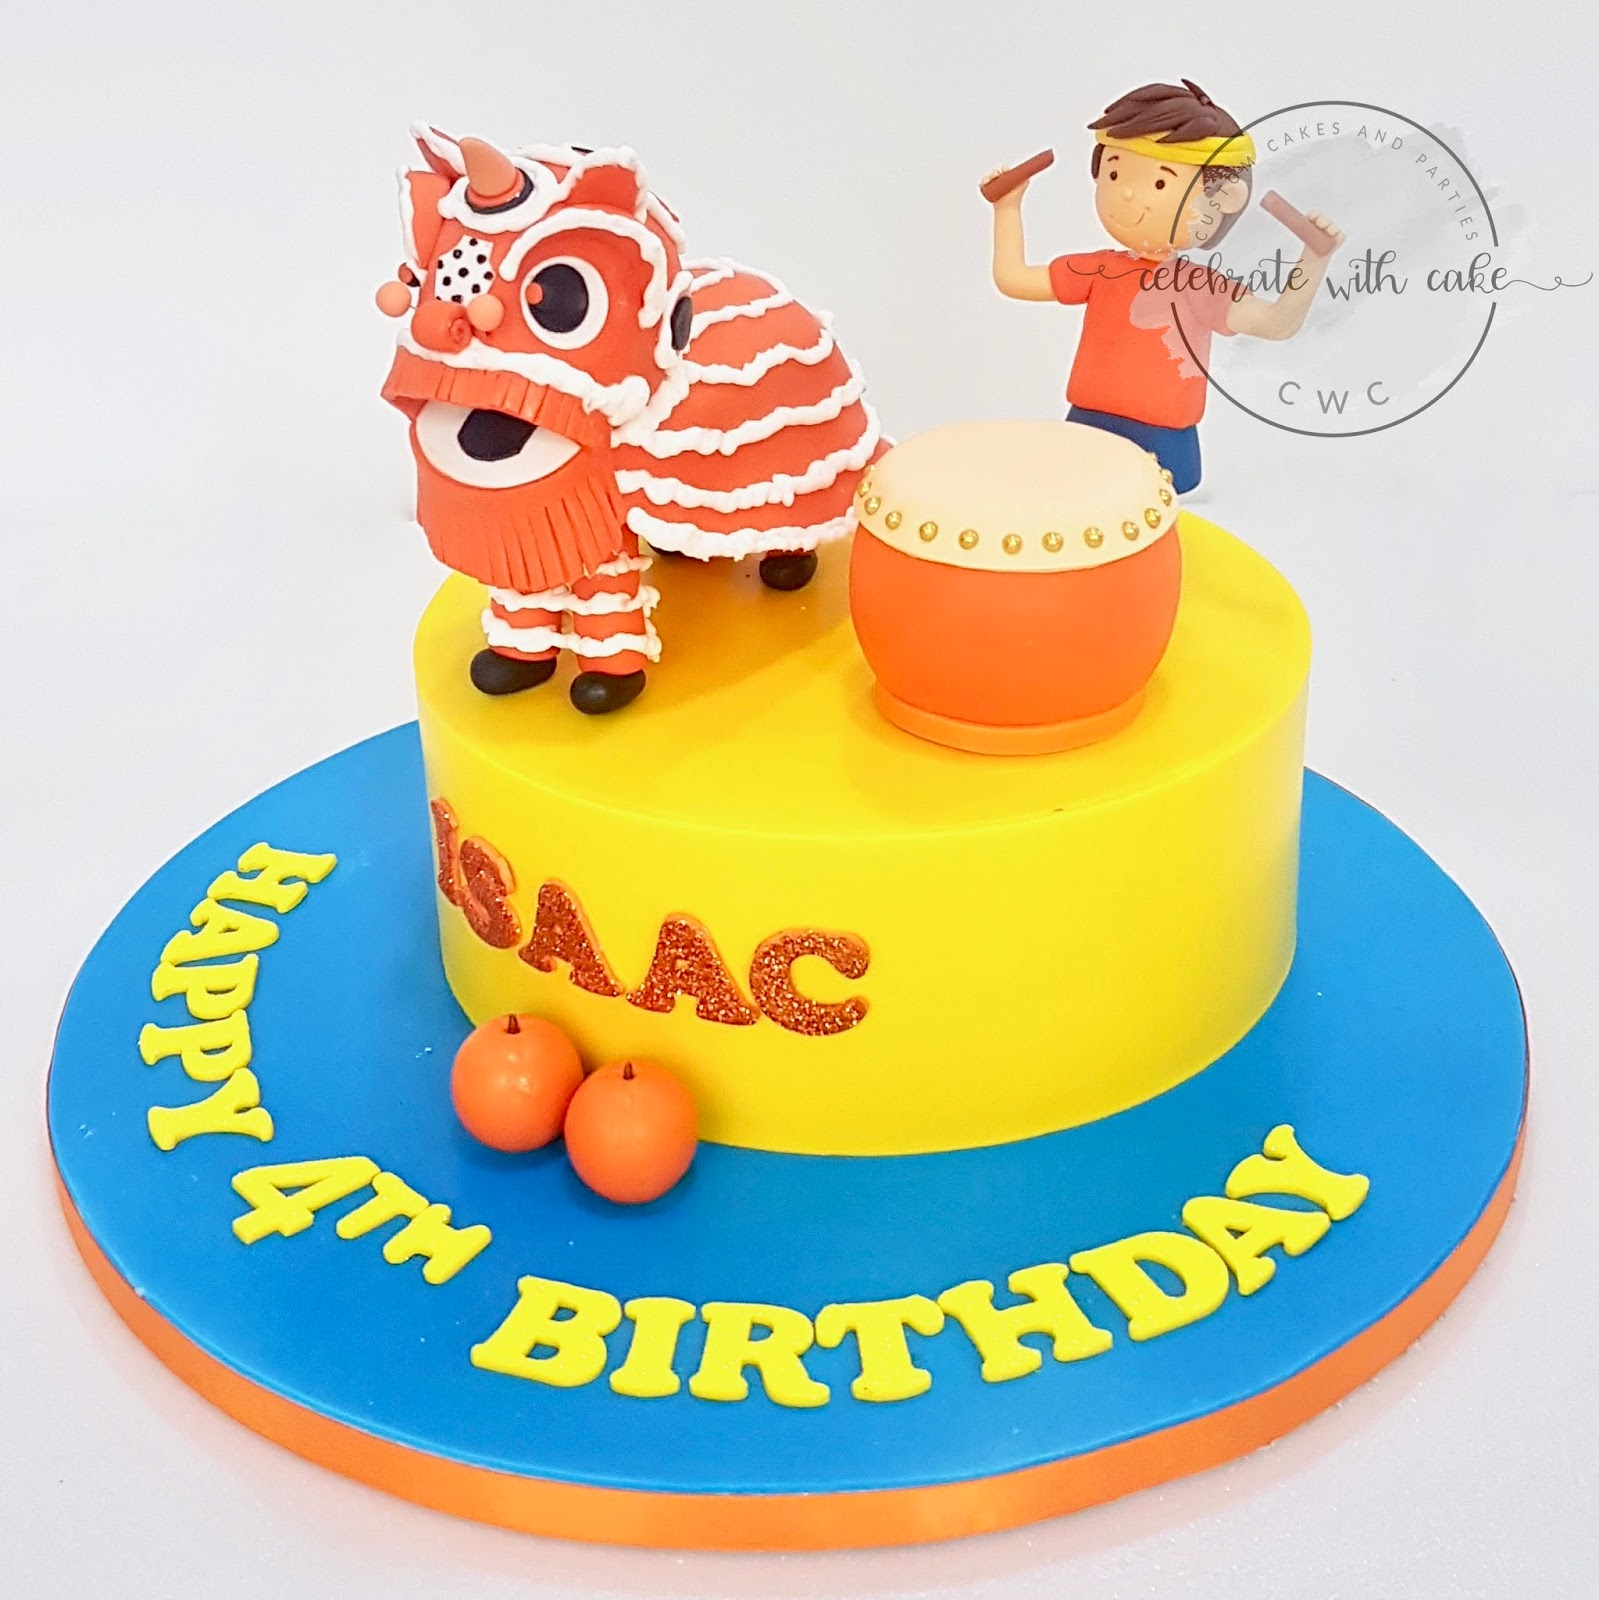 Celebrate with Cake Lion Dance and Boy Drummer